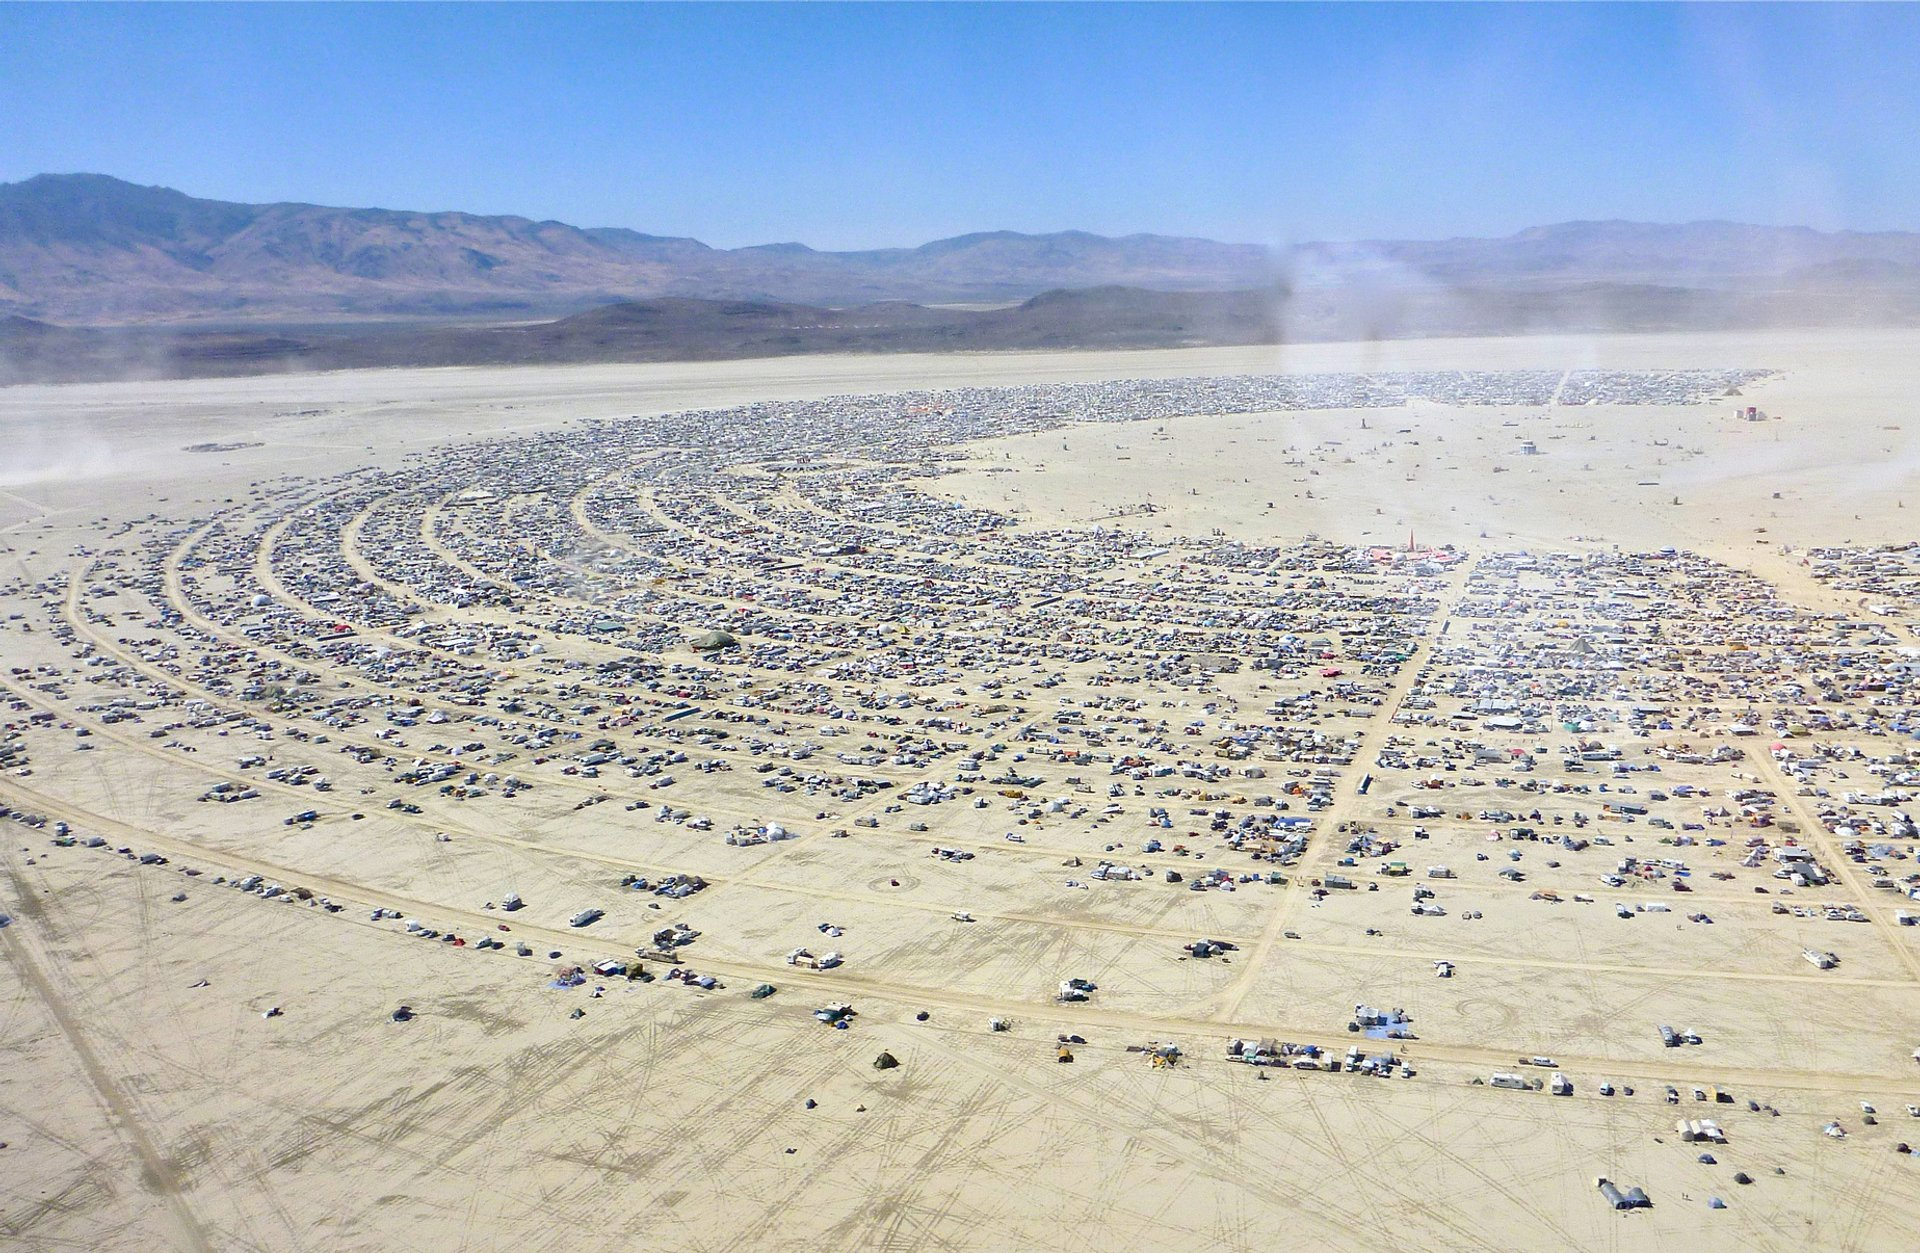 Black Rock City, view from an airlane 2020